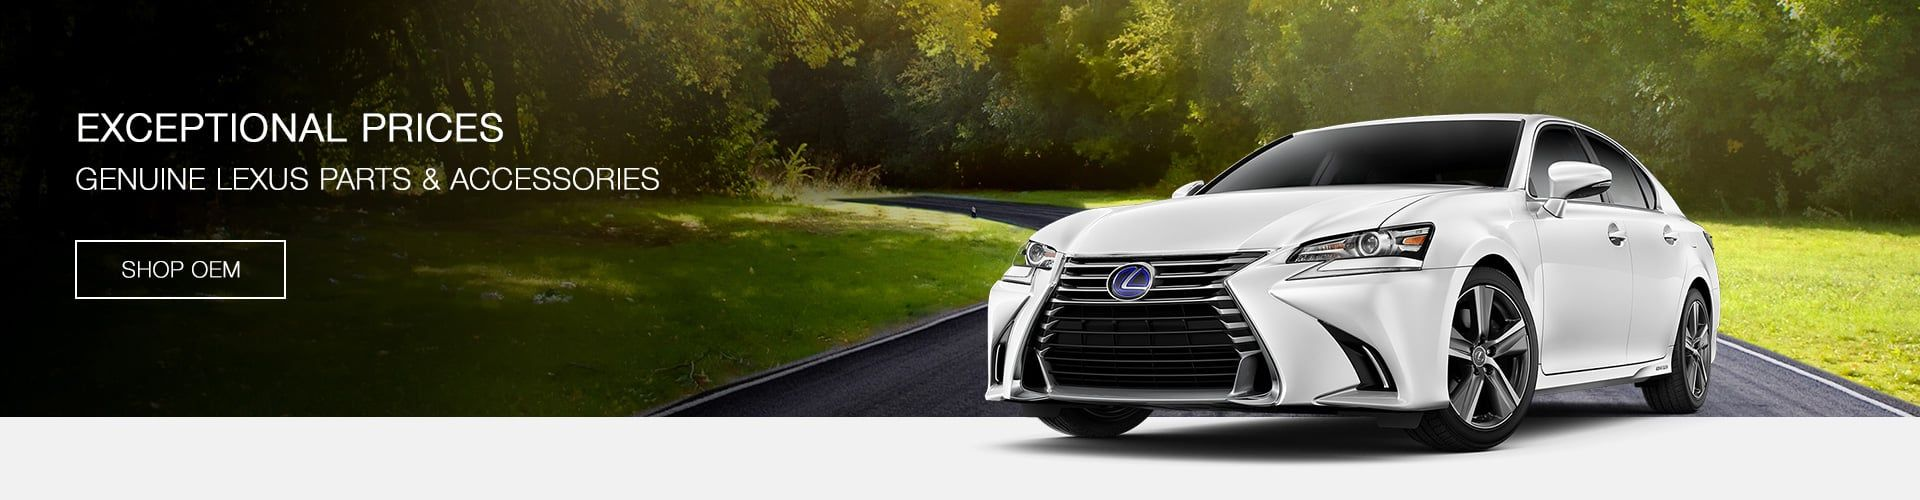 Genuine Lexus Parts & Accessories